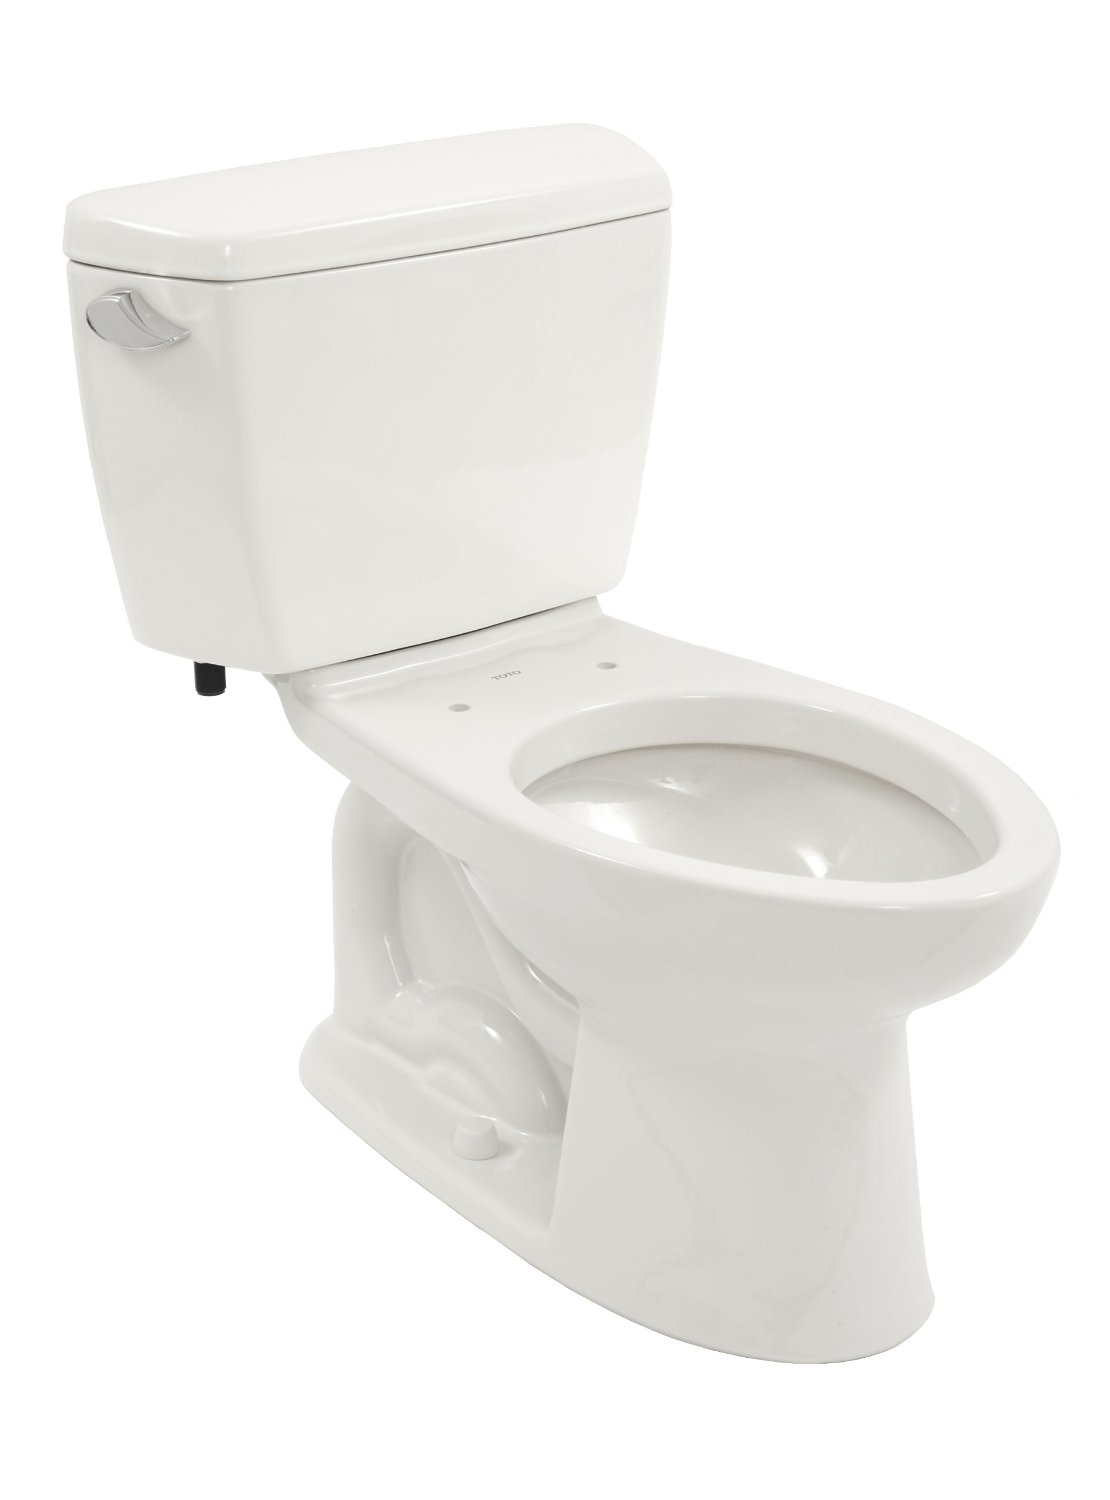 TOTO Drake Toilet Review | Toilet Review Guide